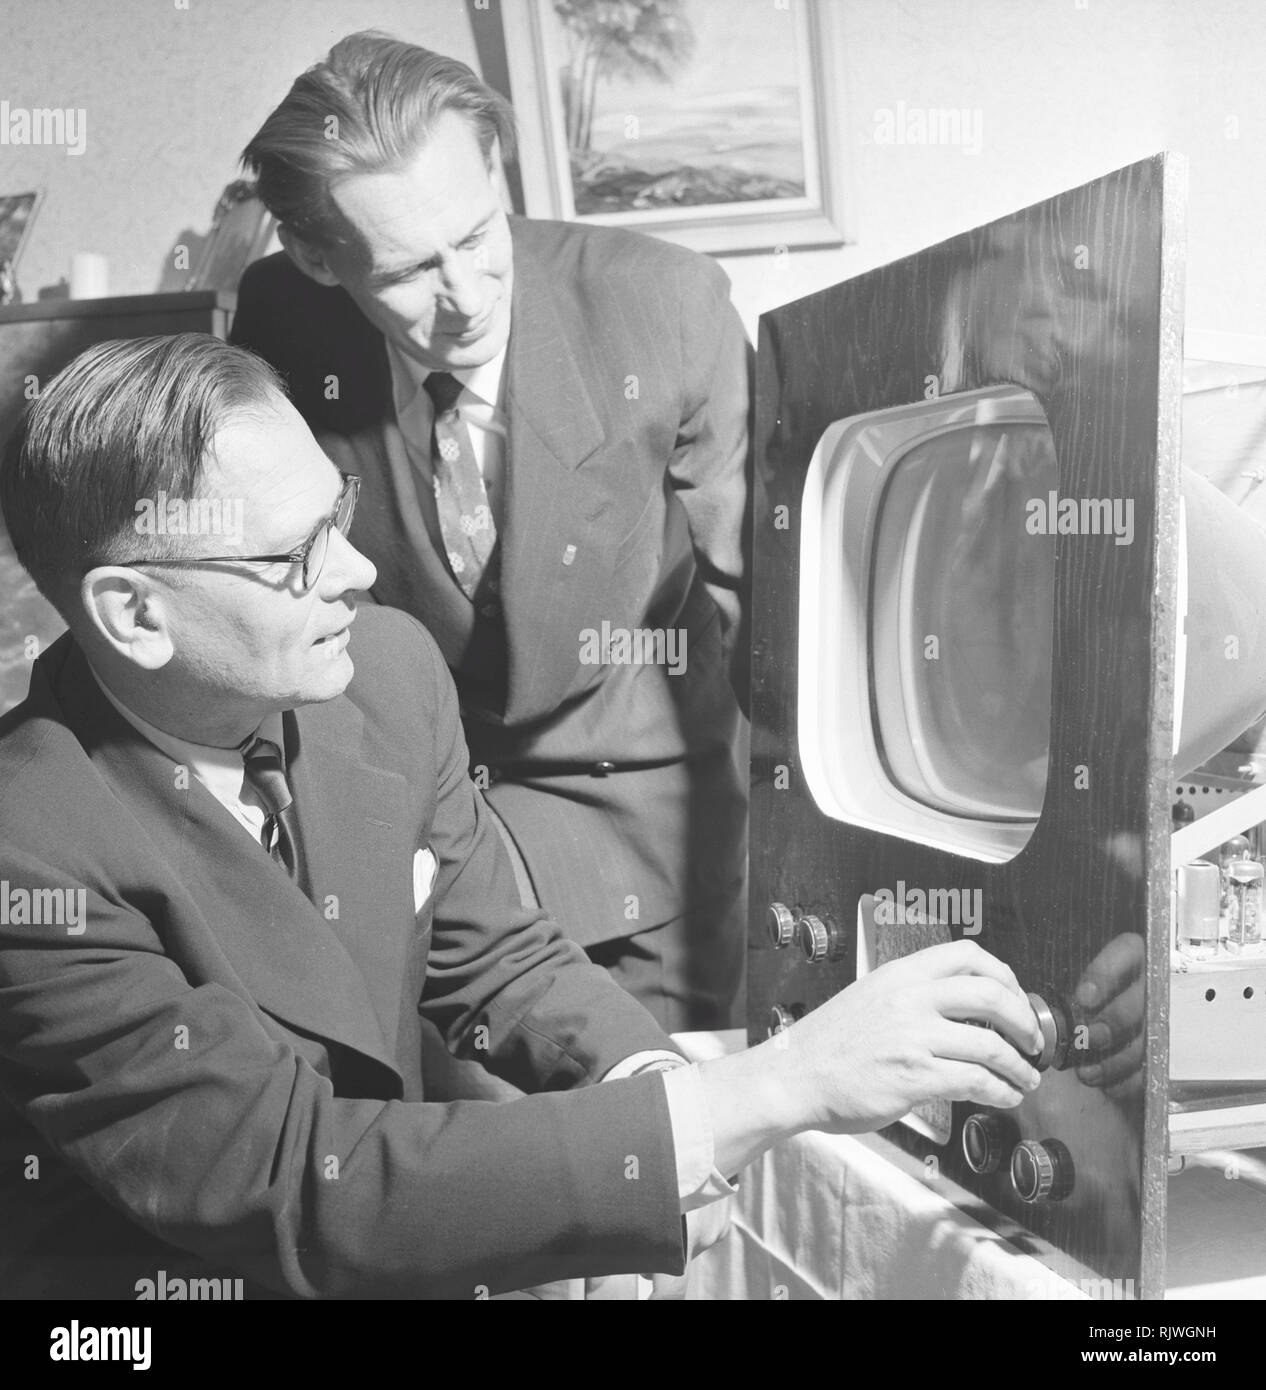 Television in the 1950s. A man with an early television set in production or testing is adjusting the picture. November 1953 Stock Photo